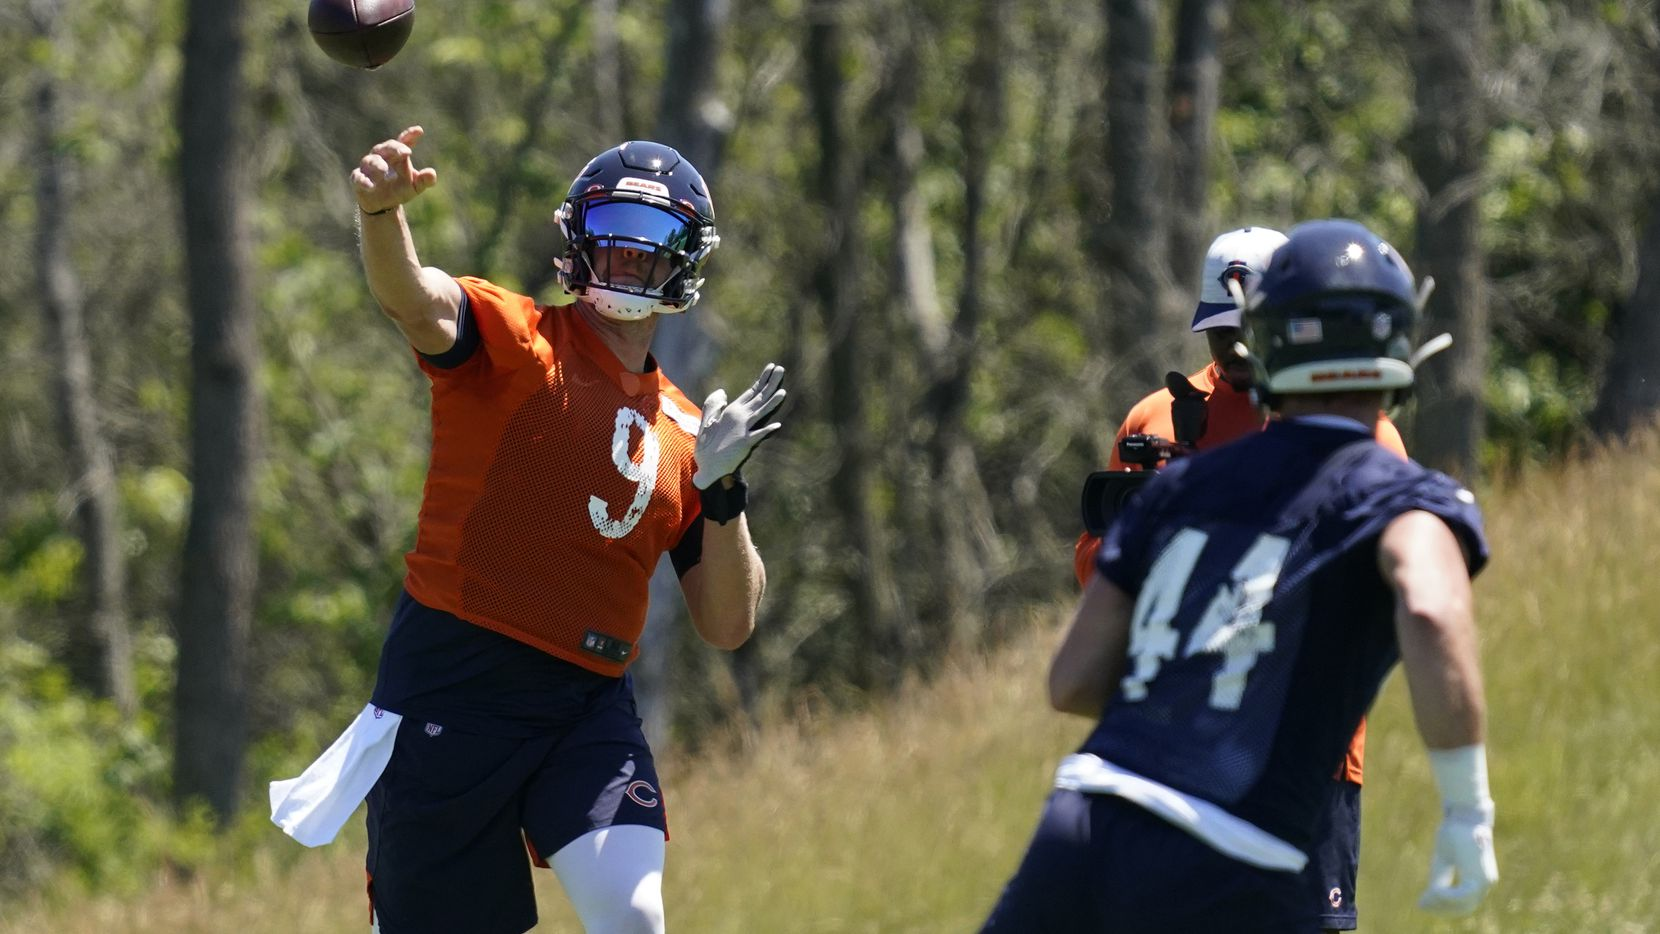 Chicago Bears quarterback Nick Foles, left, throws a ball to tight end Jake Butt during NFL football practice in Lake Forest, Ill., Wednesday, June 16, 2021.